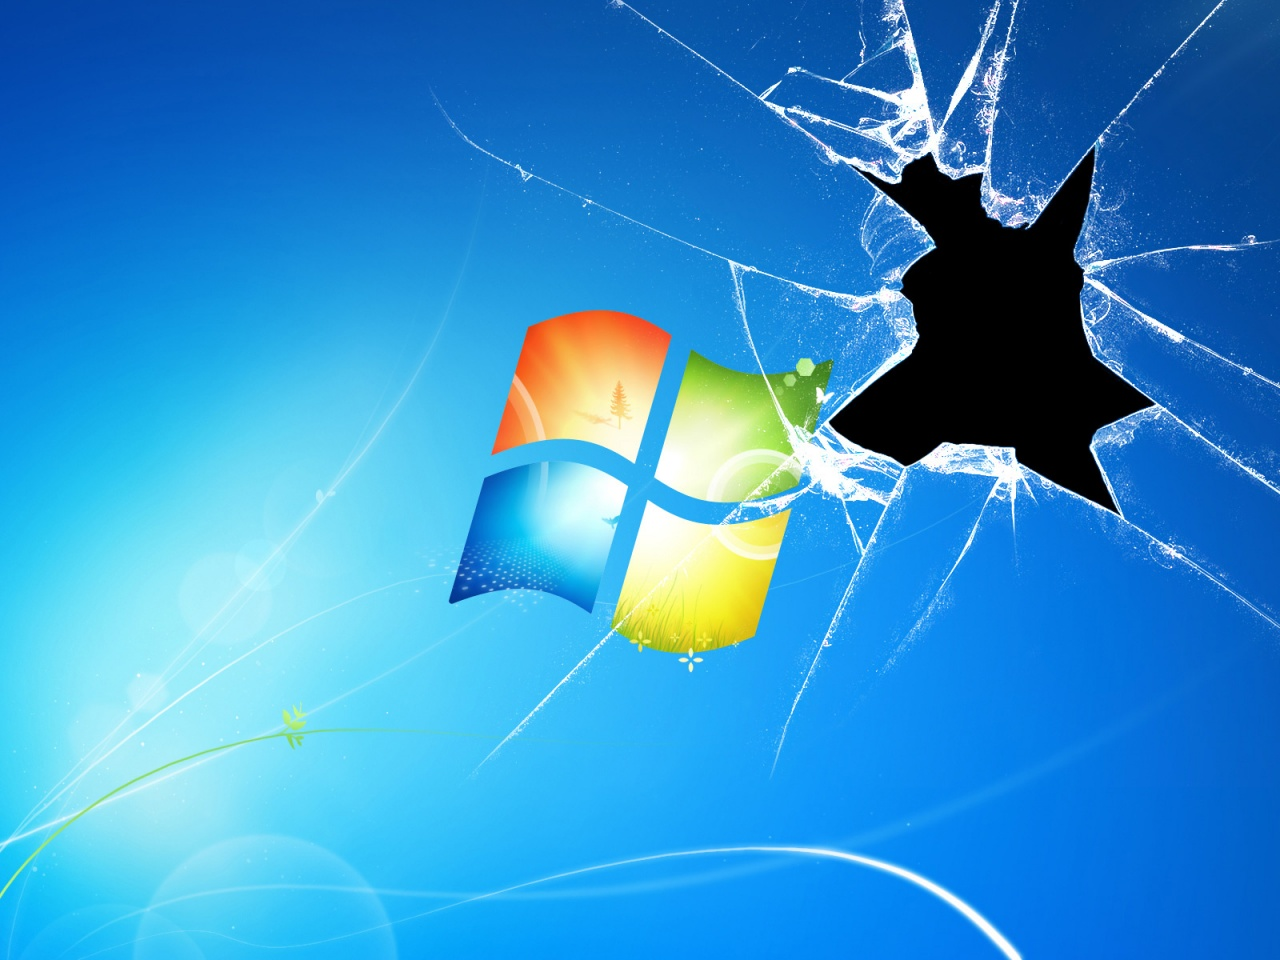 1280x960 Windows 7 Broken,  glass